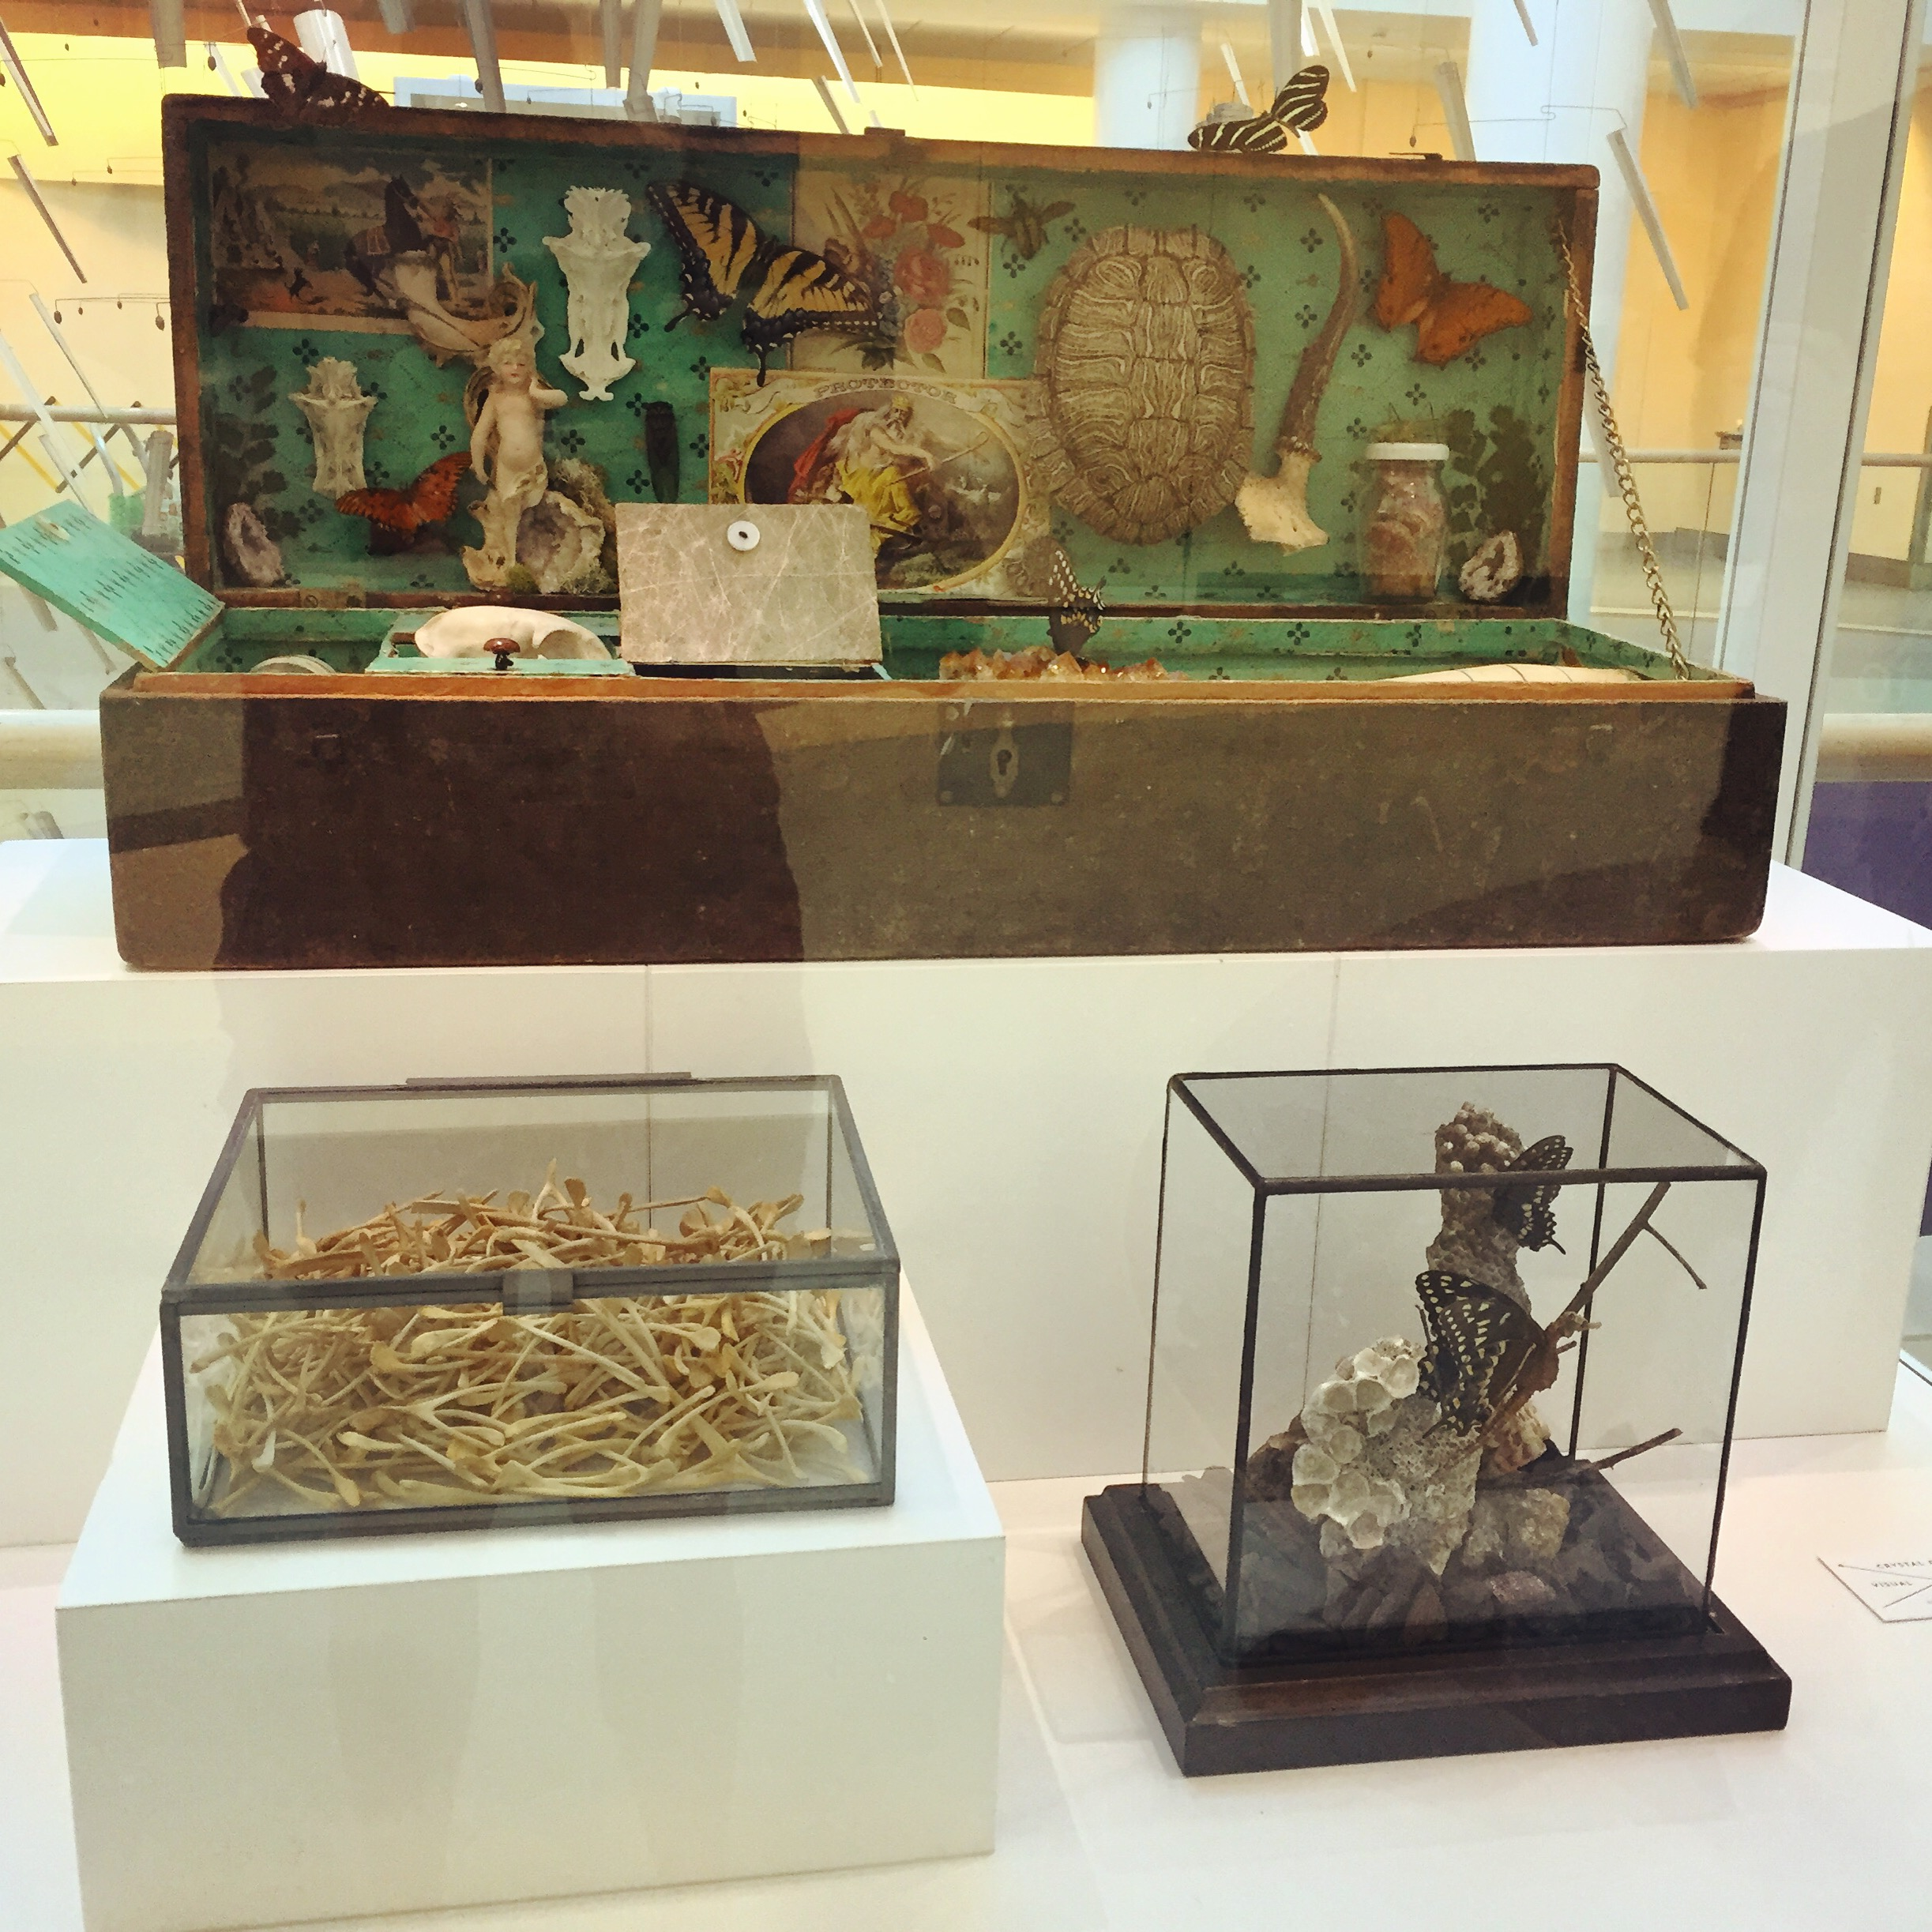 Exhibition at the Concourse Gallery Cases at the Jacksonville International Airport, July - December 2016.